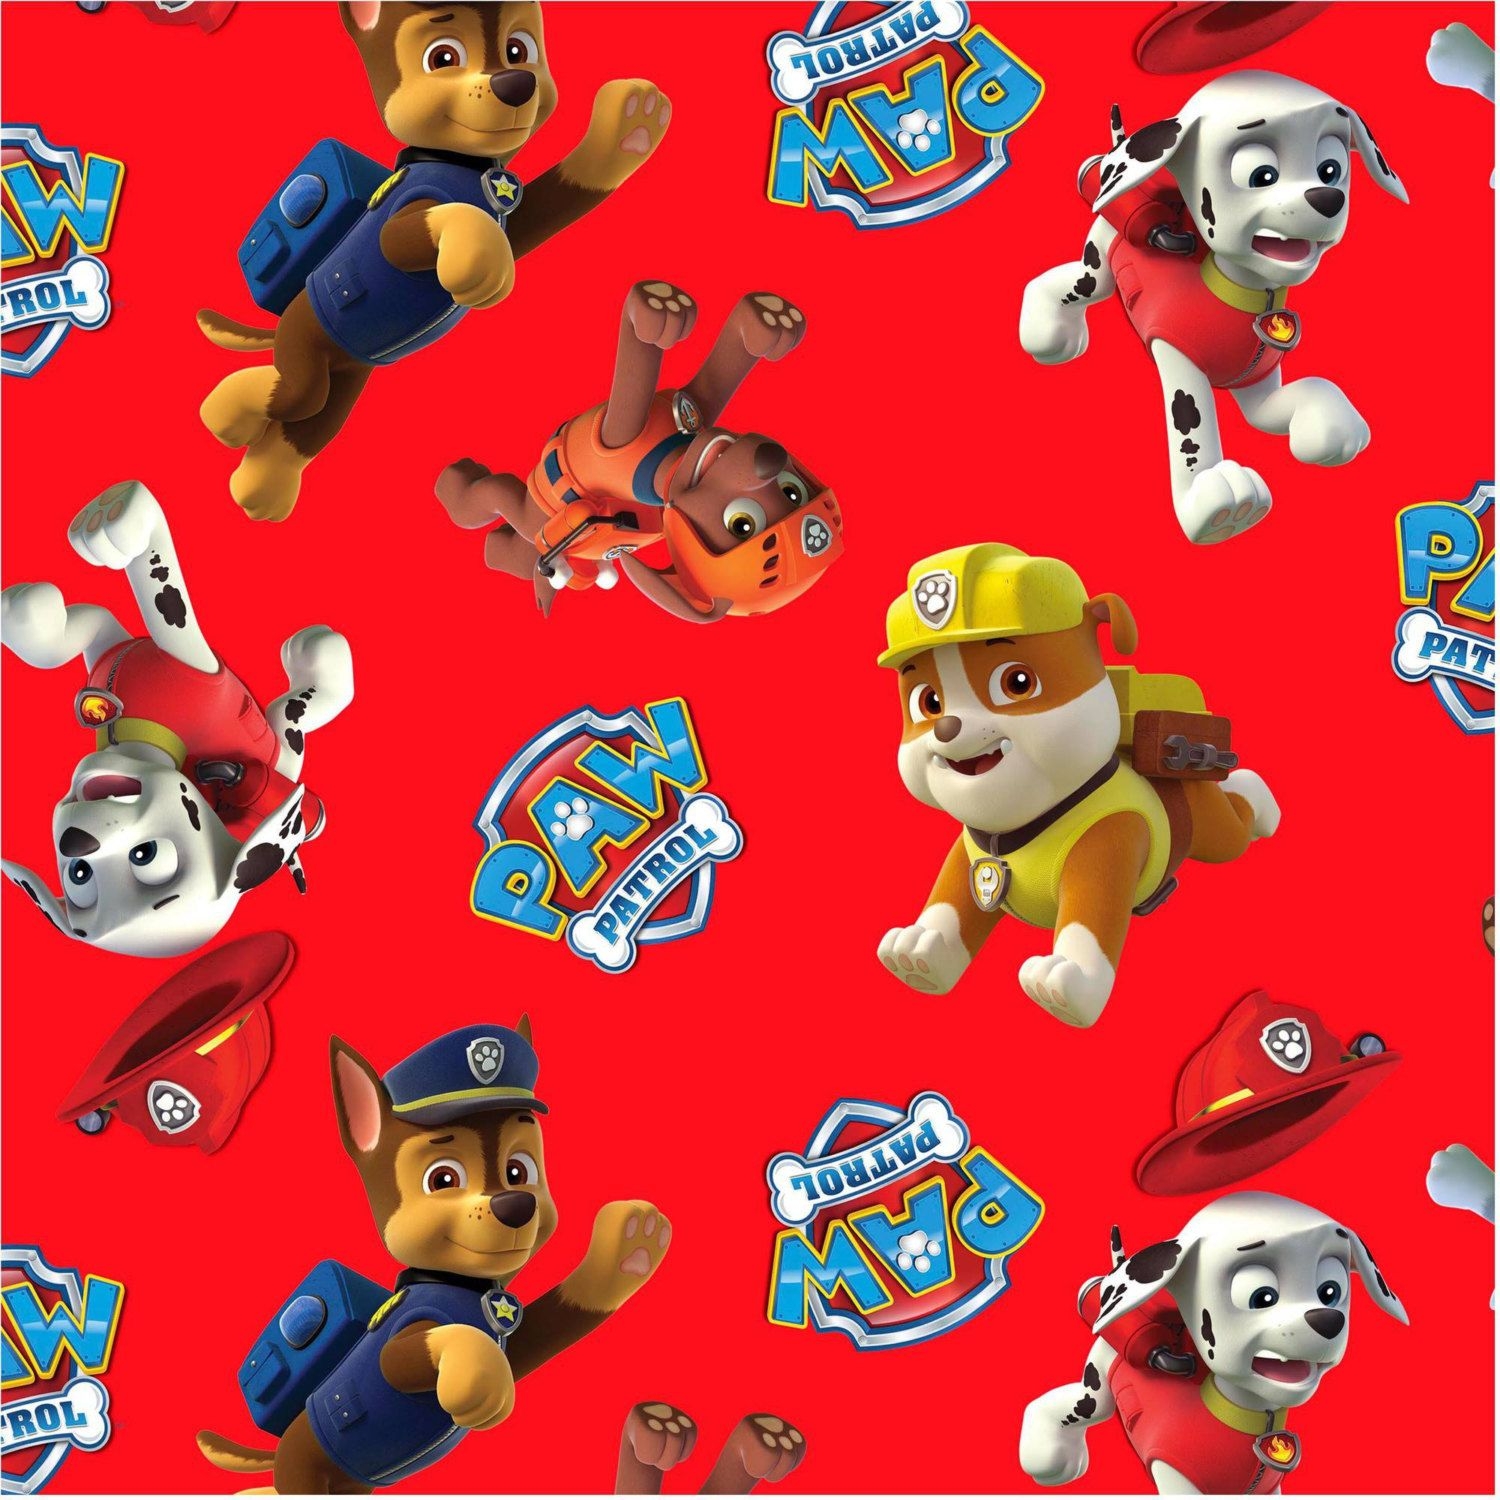 Paw Patrol Toss Licensed Cotton Fabric By David Textiles Etsy Arts Crafts Sewing Boy And Girl Cartoon Paw Patrol [ 1500 x 1500 Pixel ]